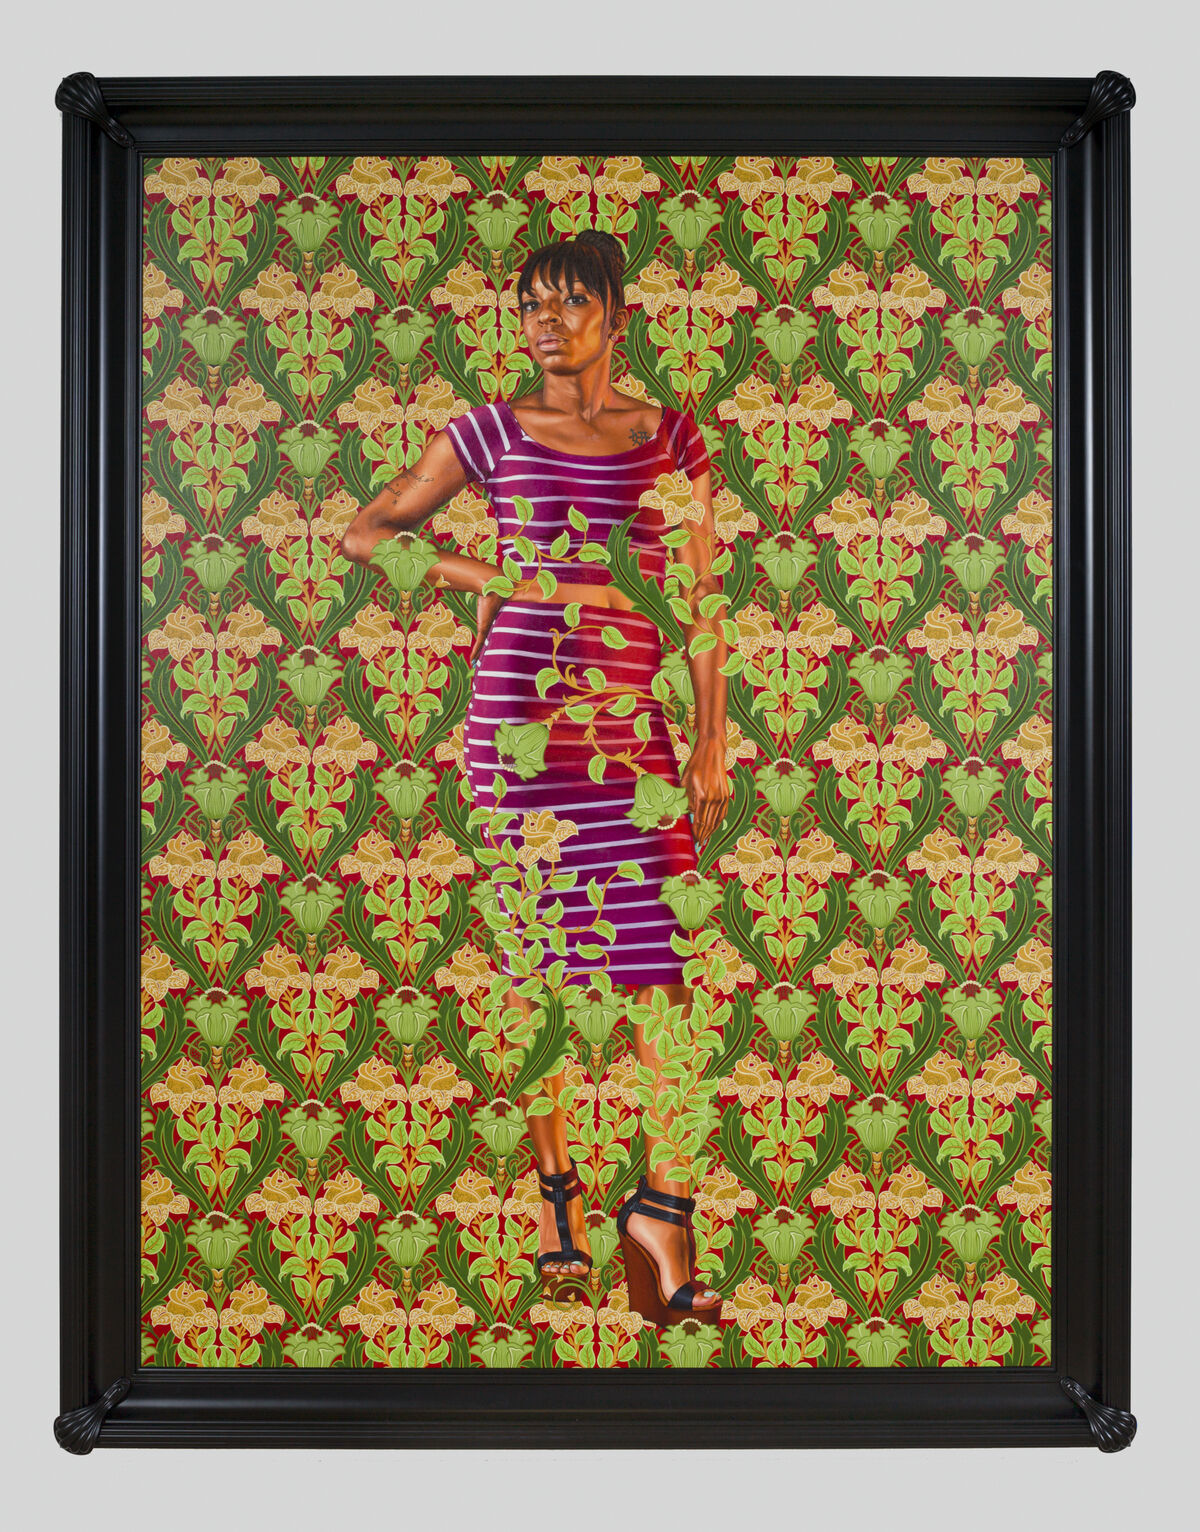 Kehinde Wiley, Portrait of a Florentine Nobleman, 2018. © Kehinde Wiley. Photo by Jean-Paul Torno. Courtesy of the artist; Roberts Projects, Los Angeles, California; and Crystal Bridges Museum of American Art, Bentonville, Arkansas.